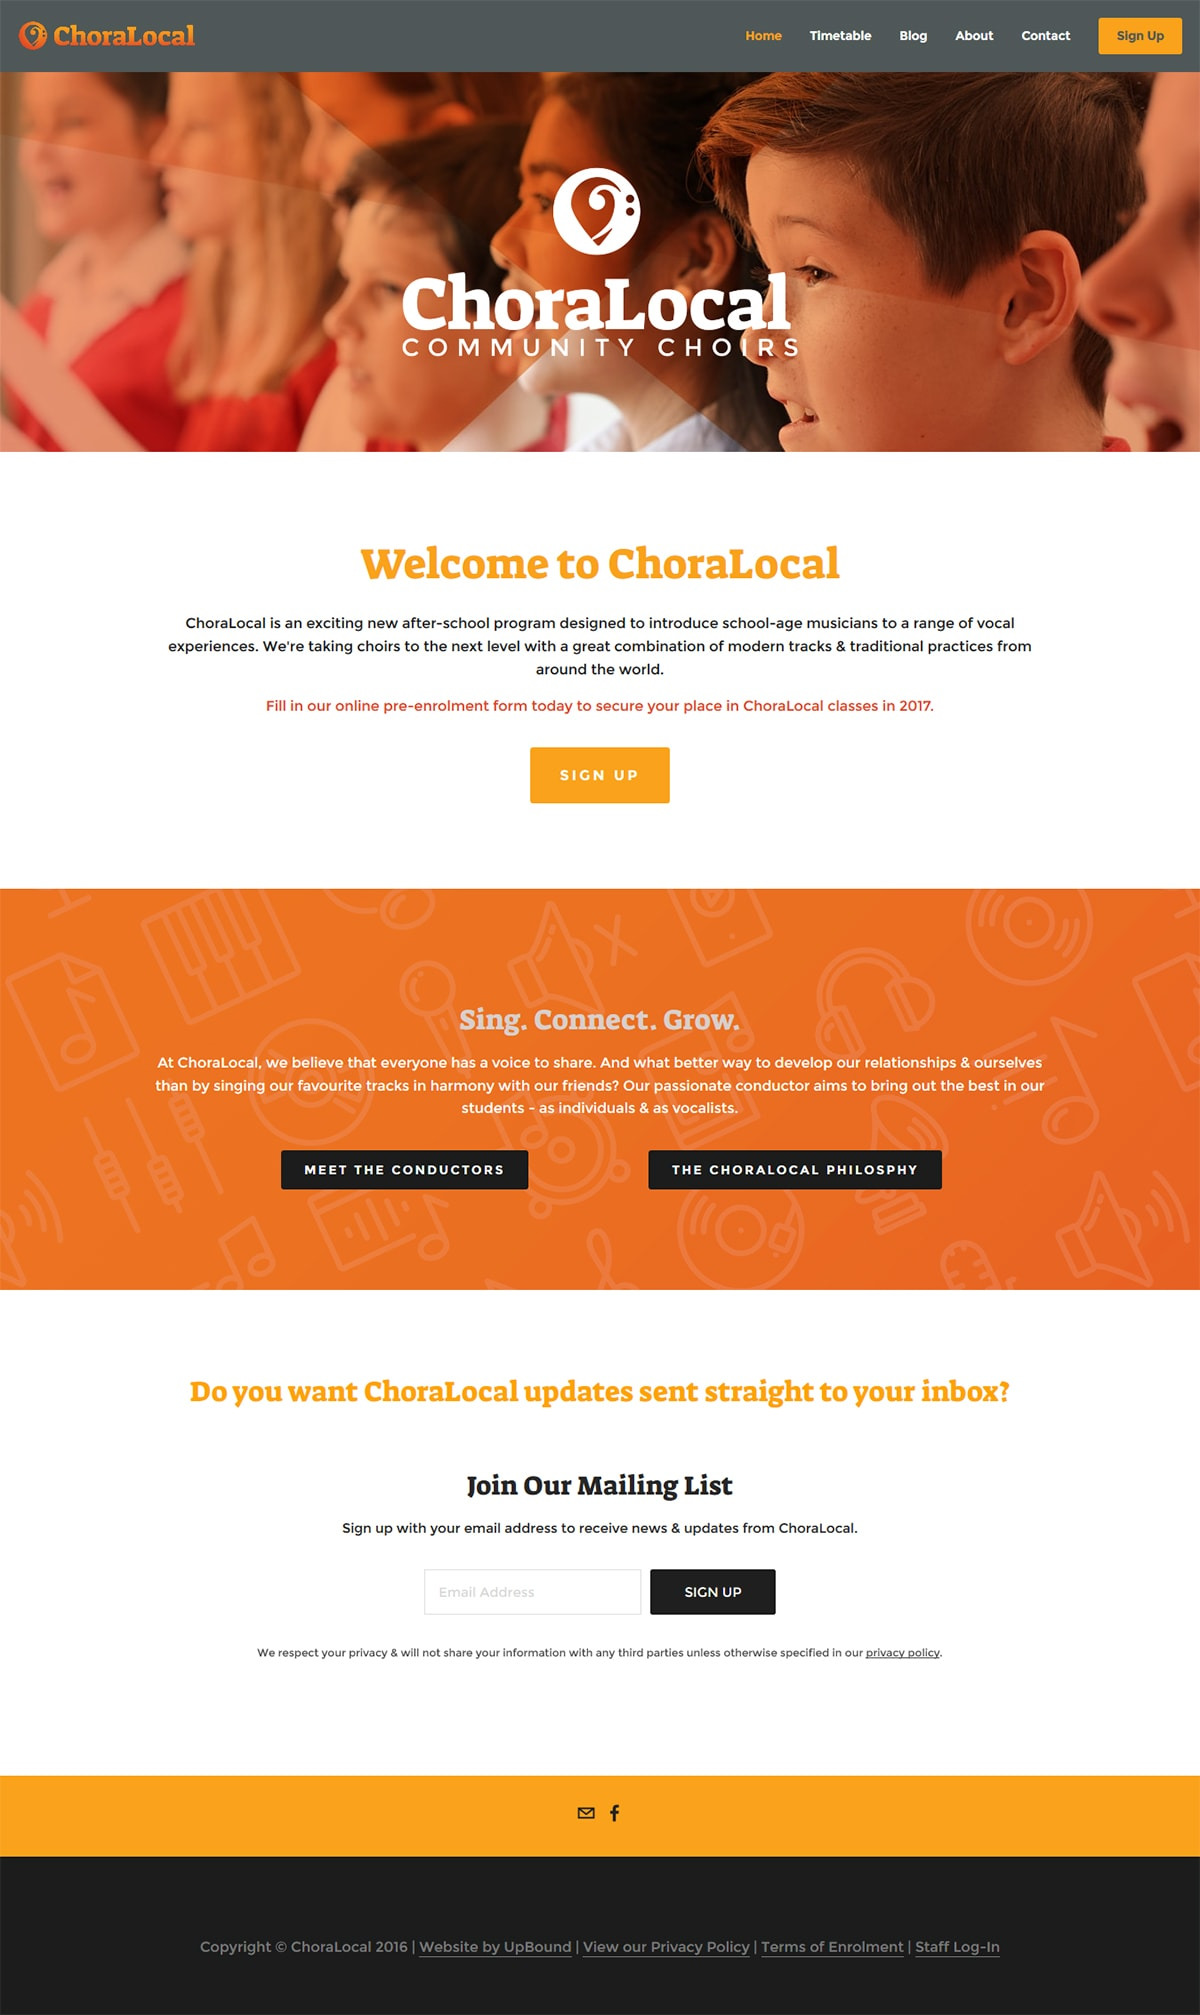 The ChoraLocal Homepage - a sample of the website design.